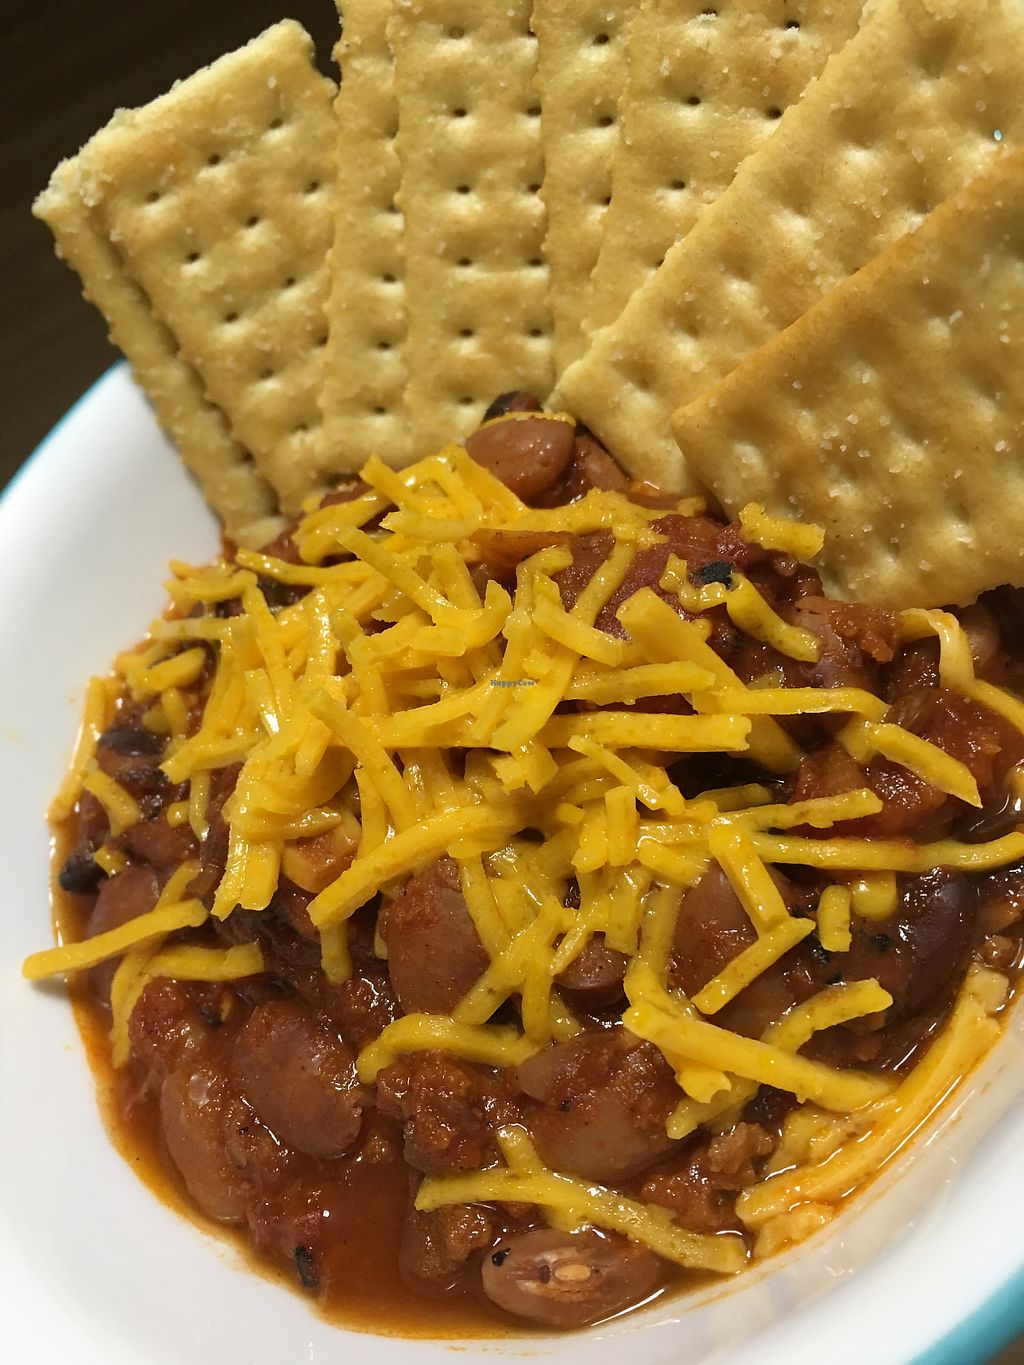 """Photo of Steady Eddy's Cafe at the Market  by <a href=""""/members/profile/EmmaMoesMommy"""">EmmaMoesMommy</a> <br/>Vegan chili  <br/> April 23, 2018  - <a href='/contact/abuse/image/27959/390148'>Report</a>"""